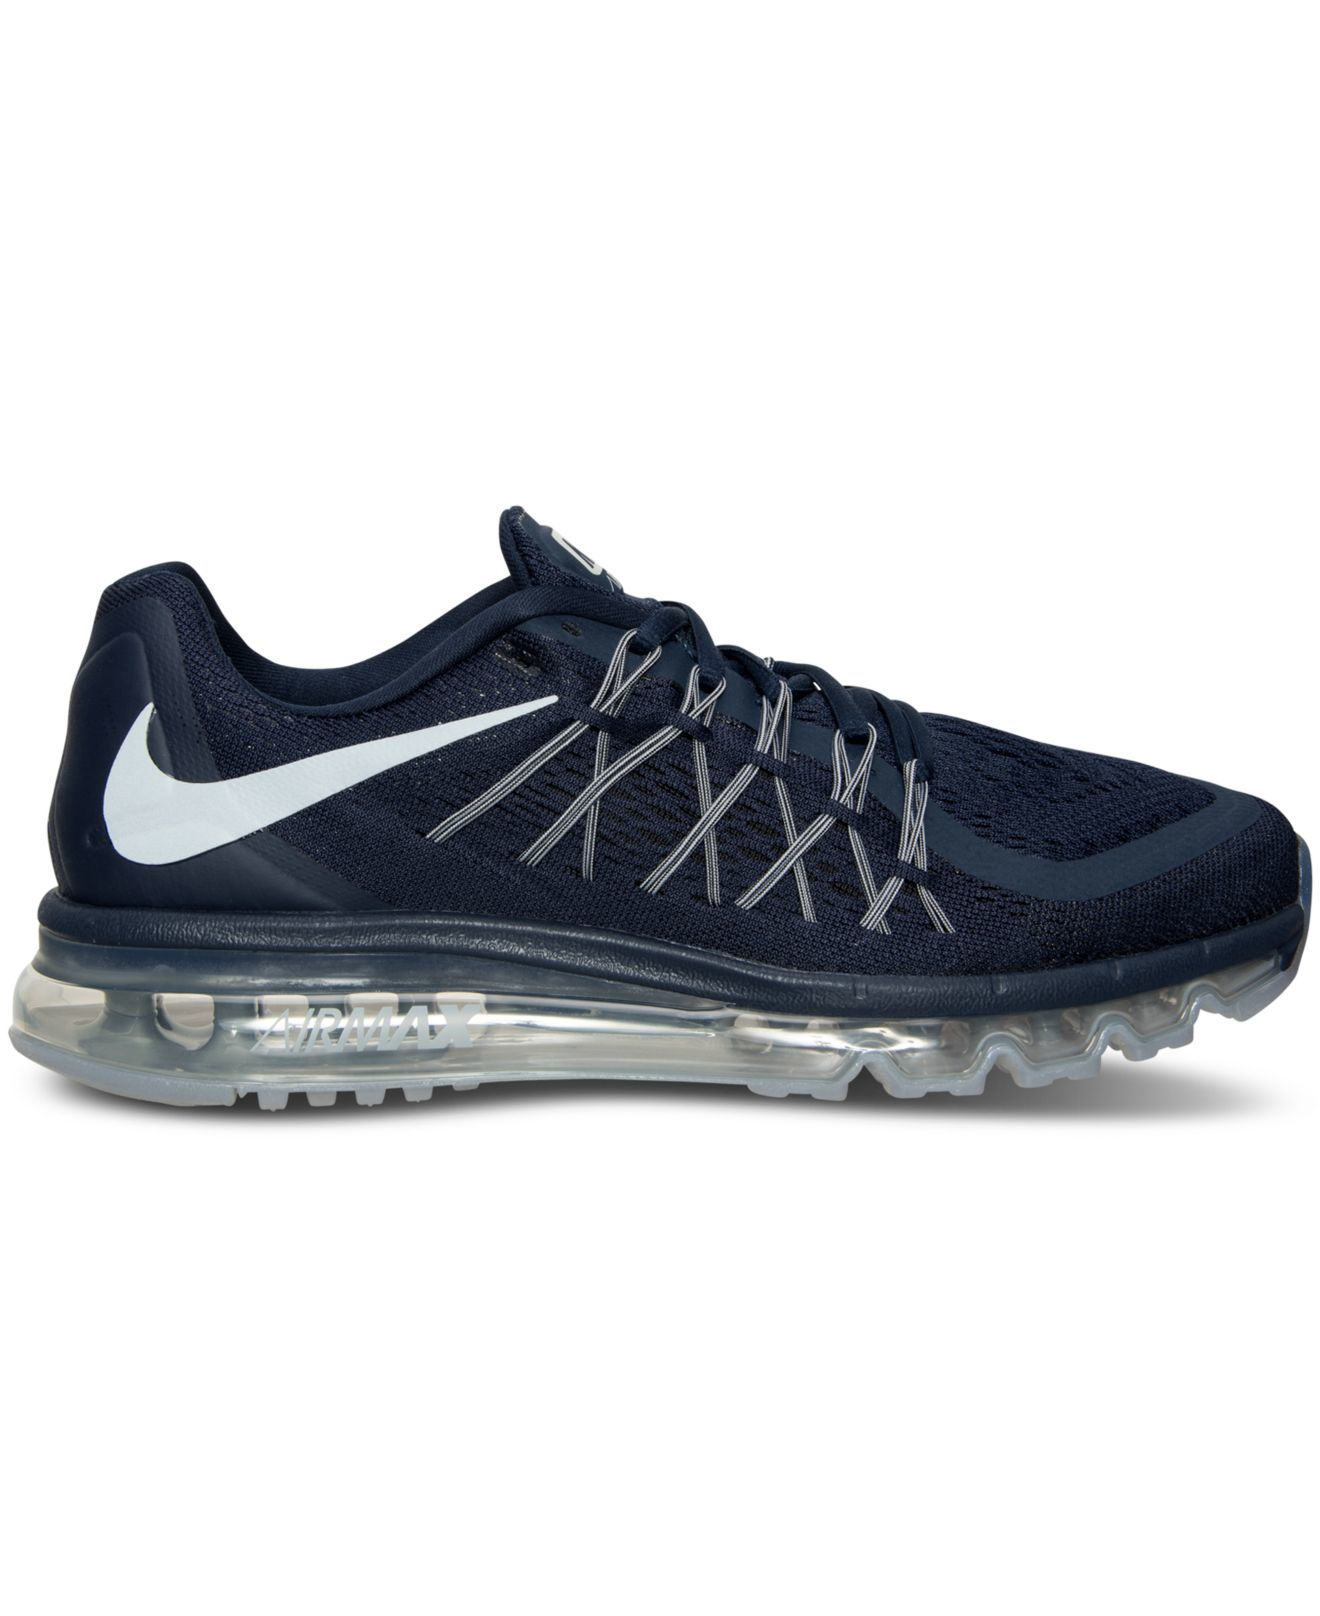 nike mens air max 2015 running sneakers from finish line